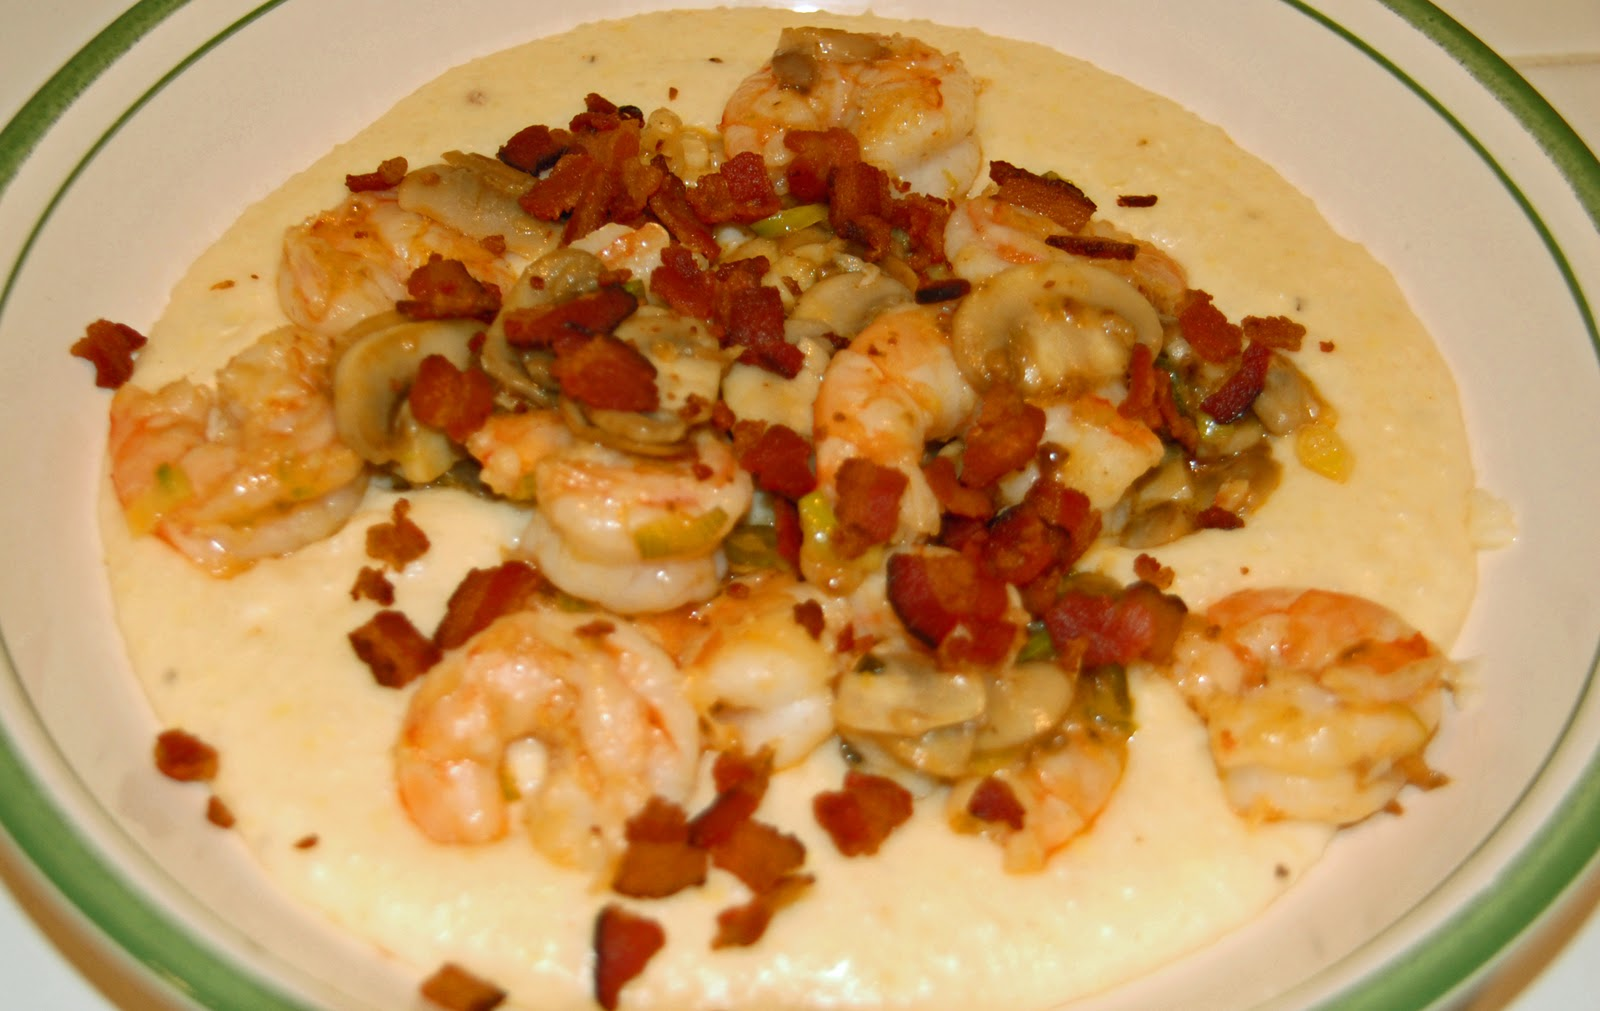 Sauteed Shrimp And Pancetta With Cheese Grits Recipes — Dishmaps